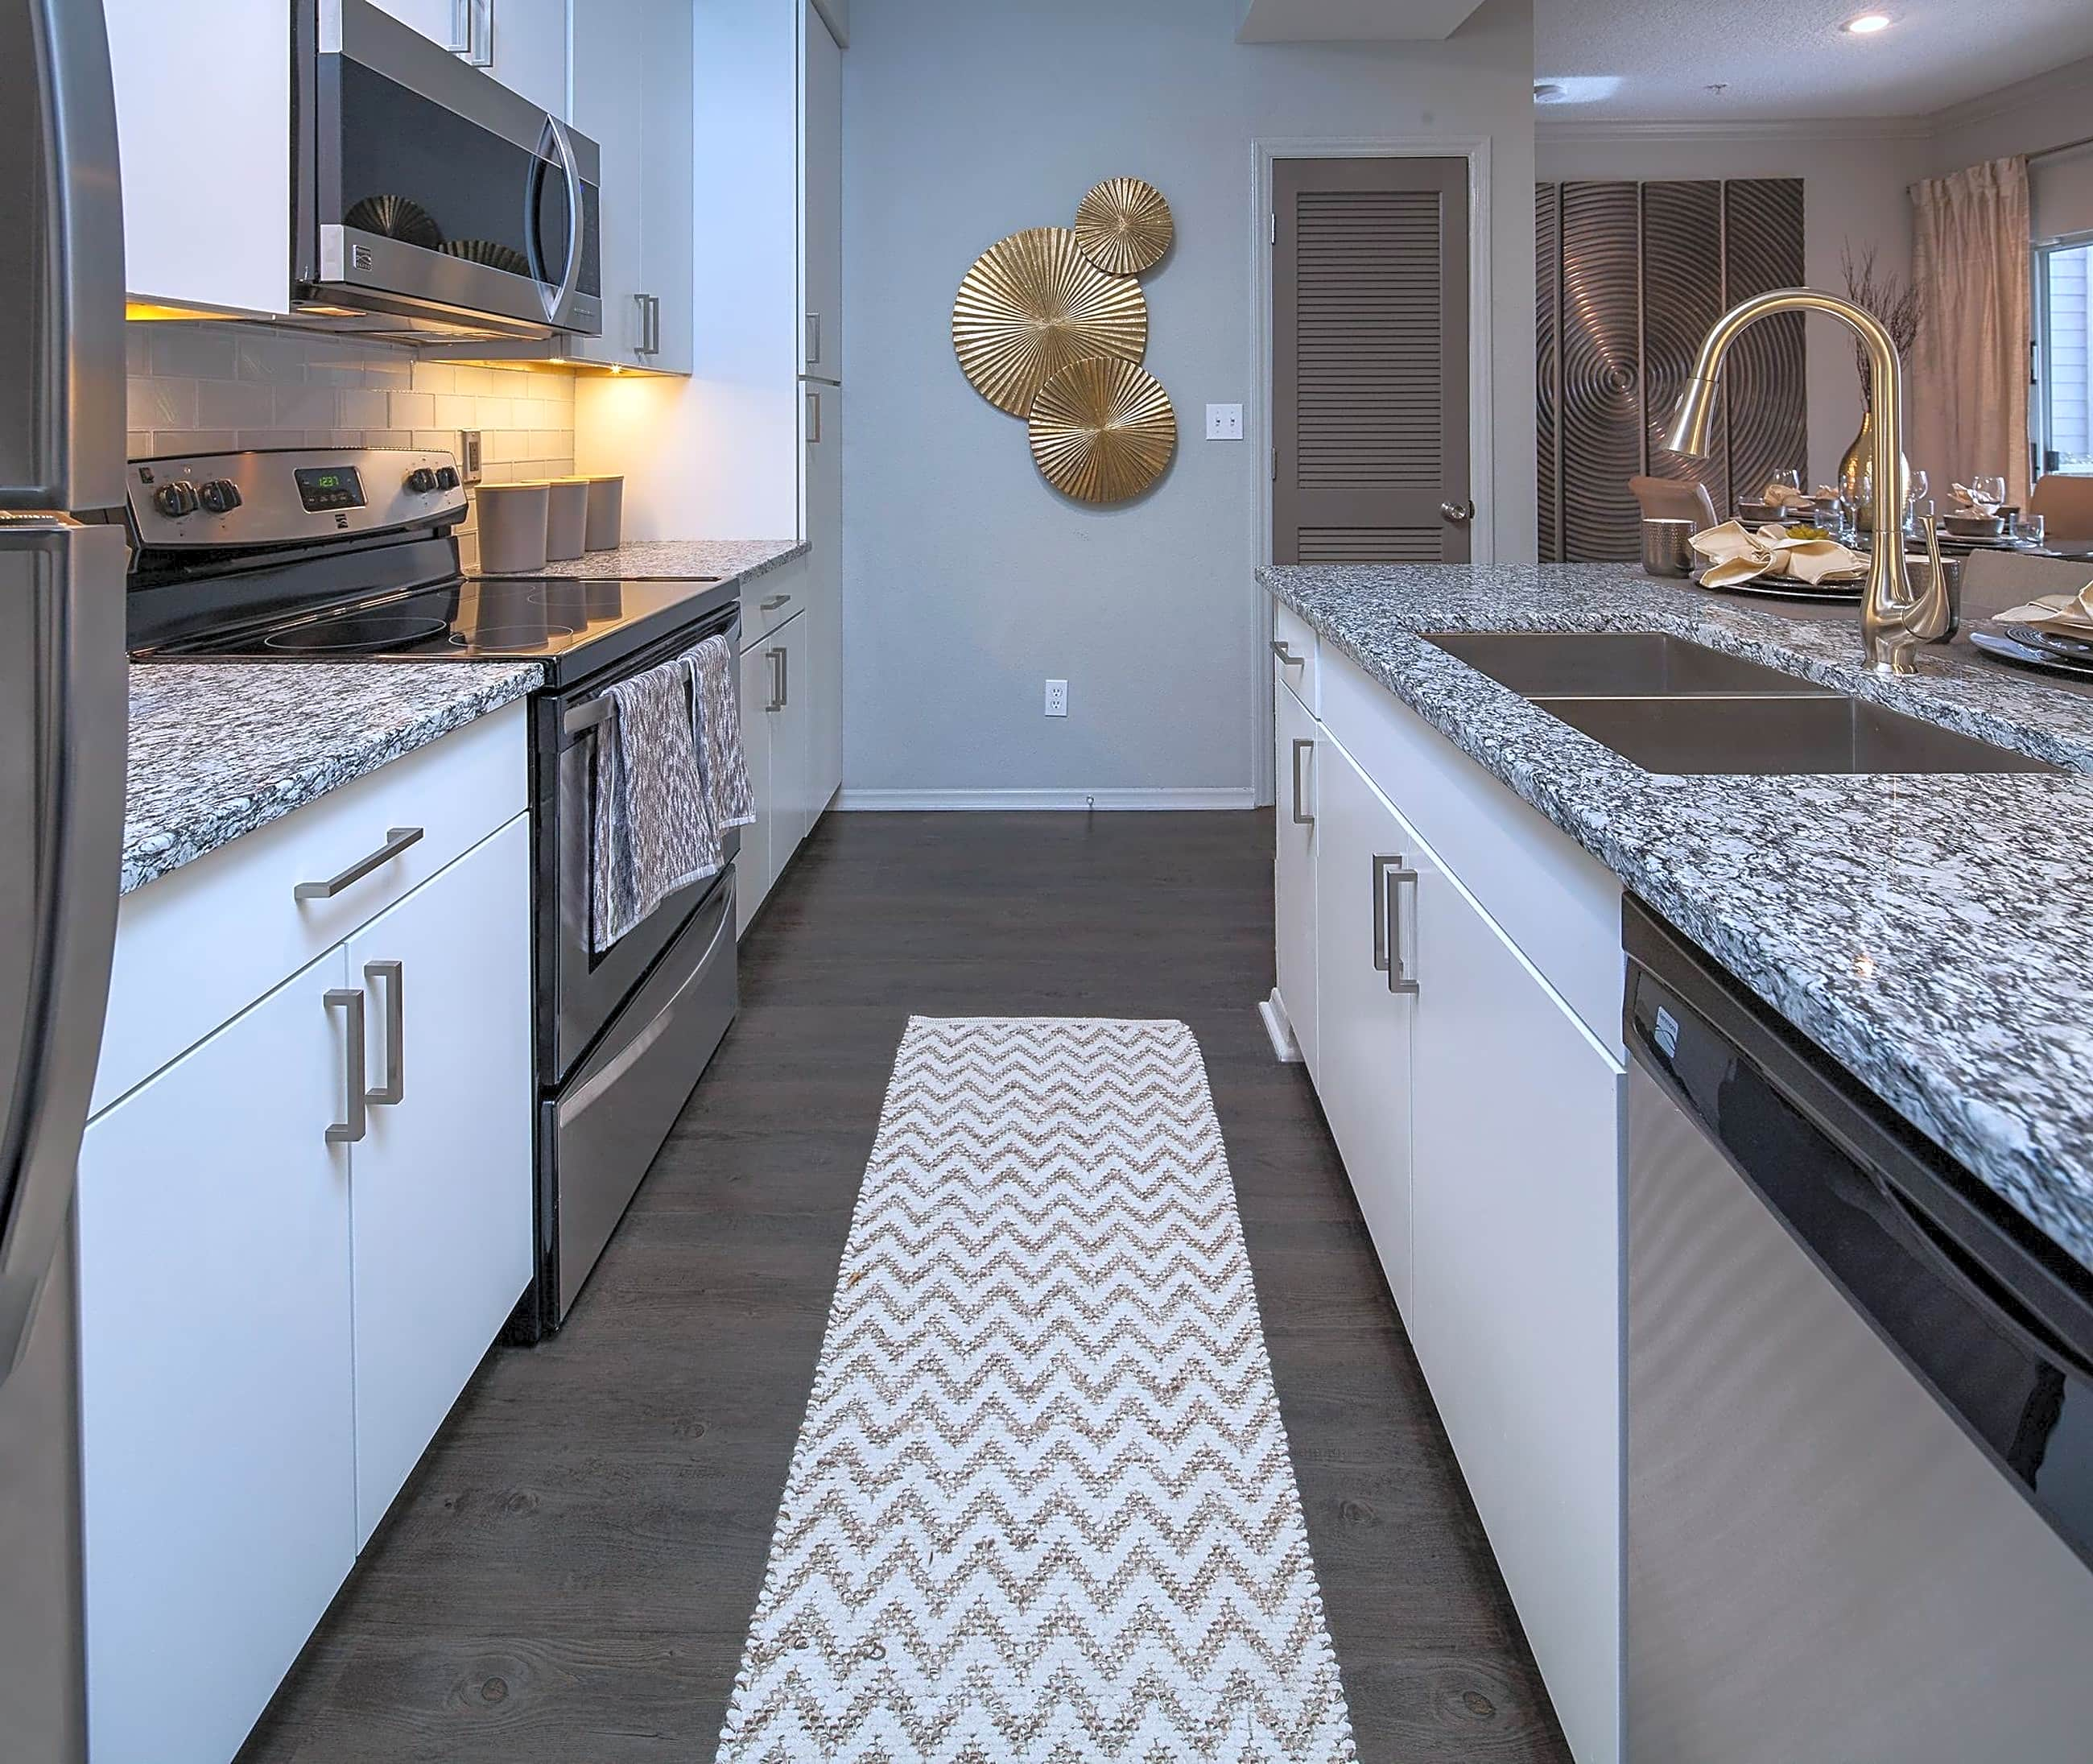 Durham Nc Apartments: The Hamptons At Research Triangle Park By Cortland